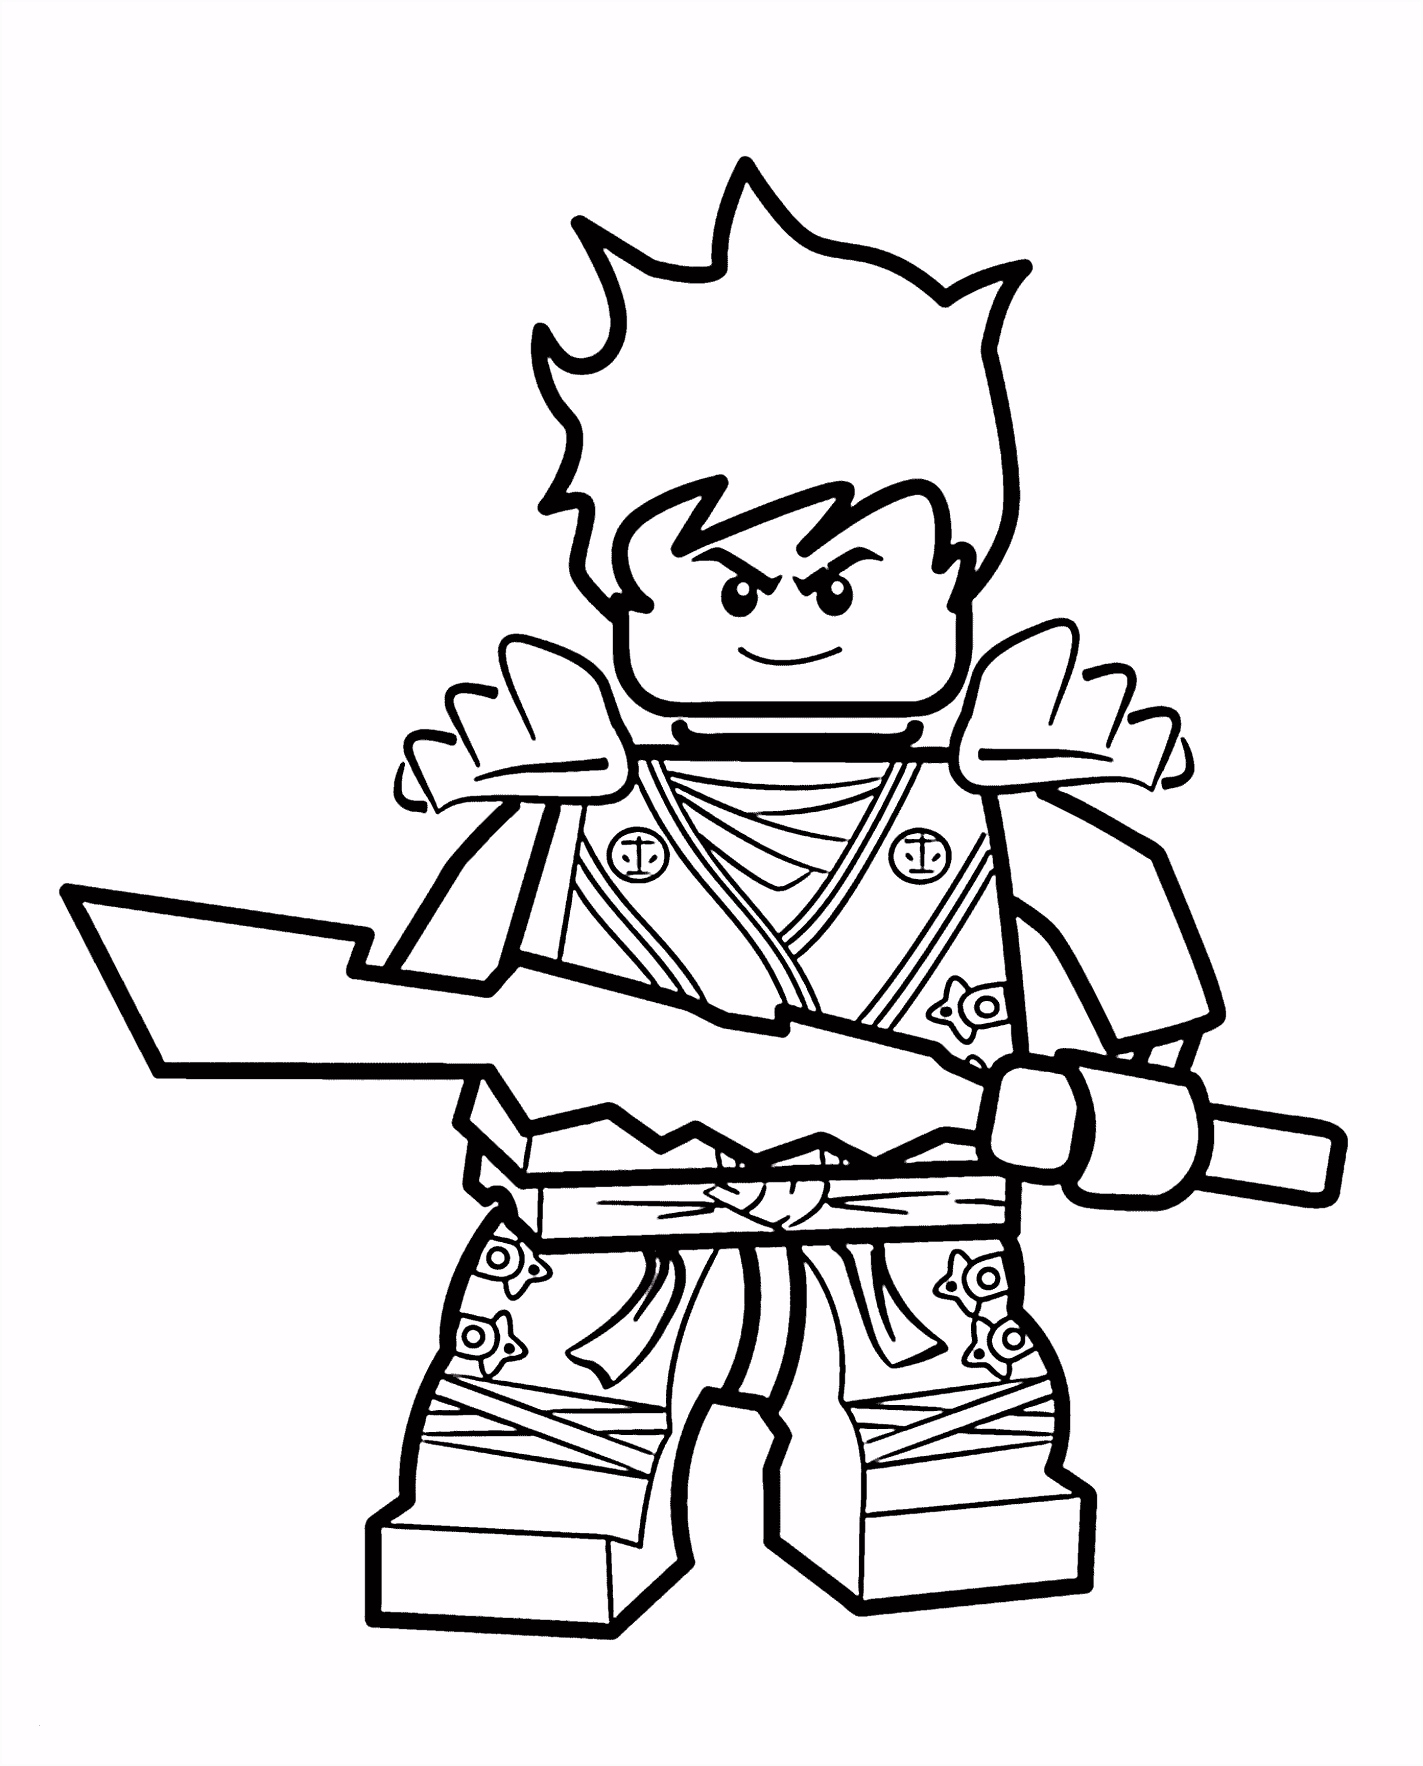 Black Ninjago Coloring Pages A Z Coloring Pages Coloring Pages